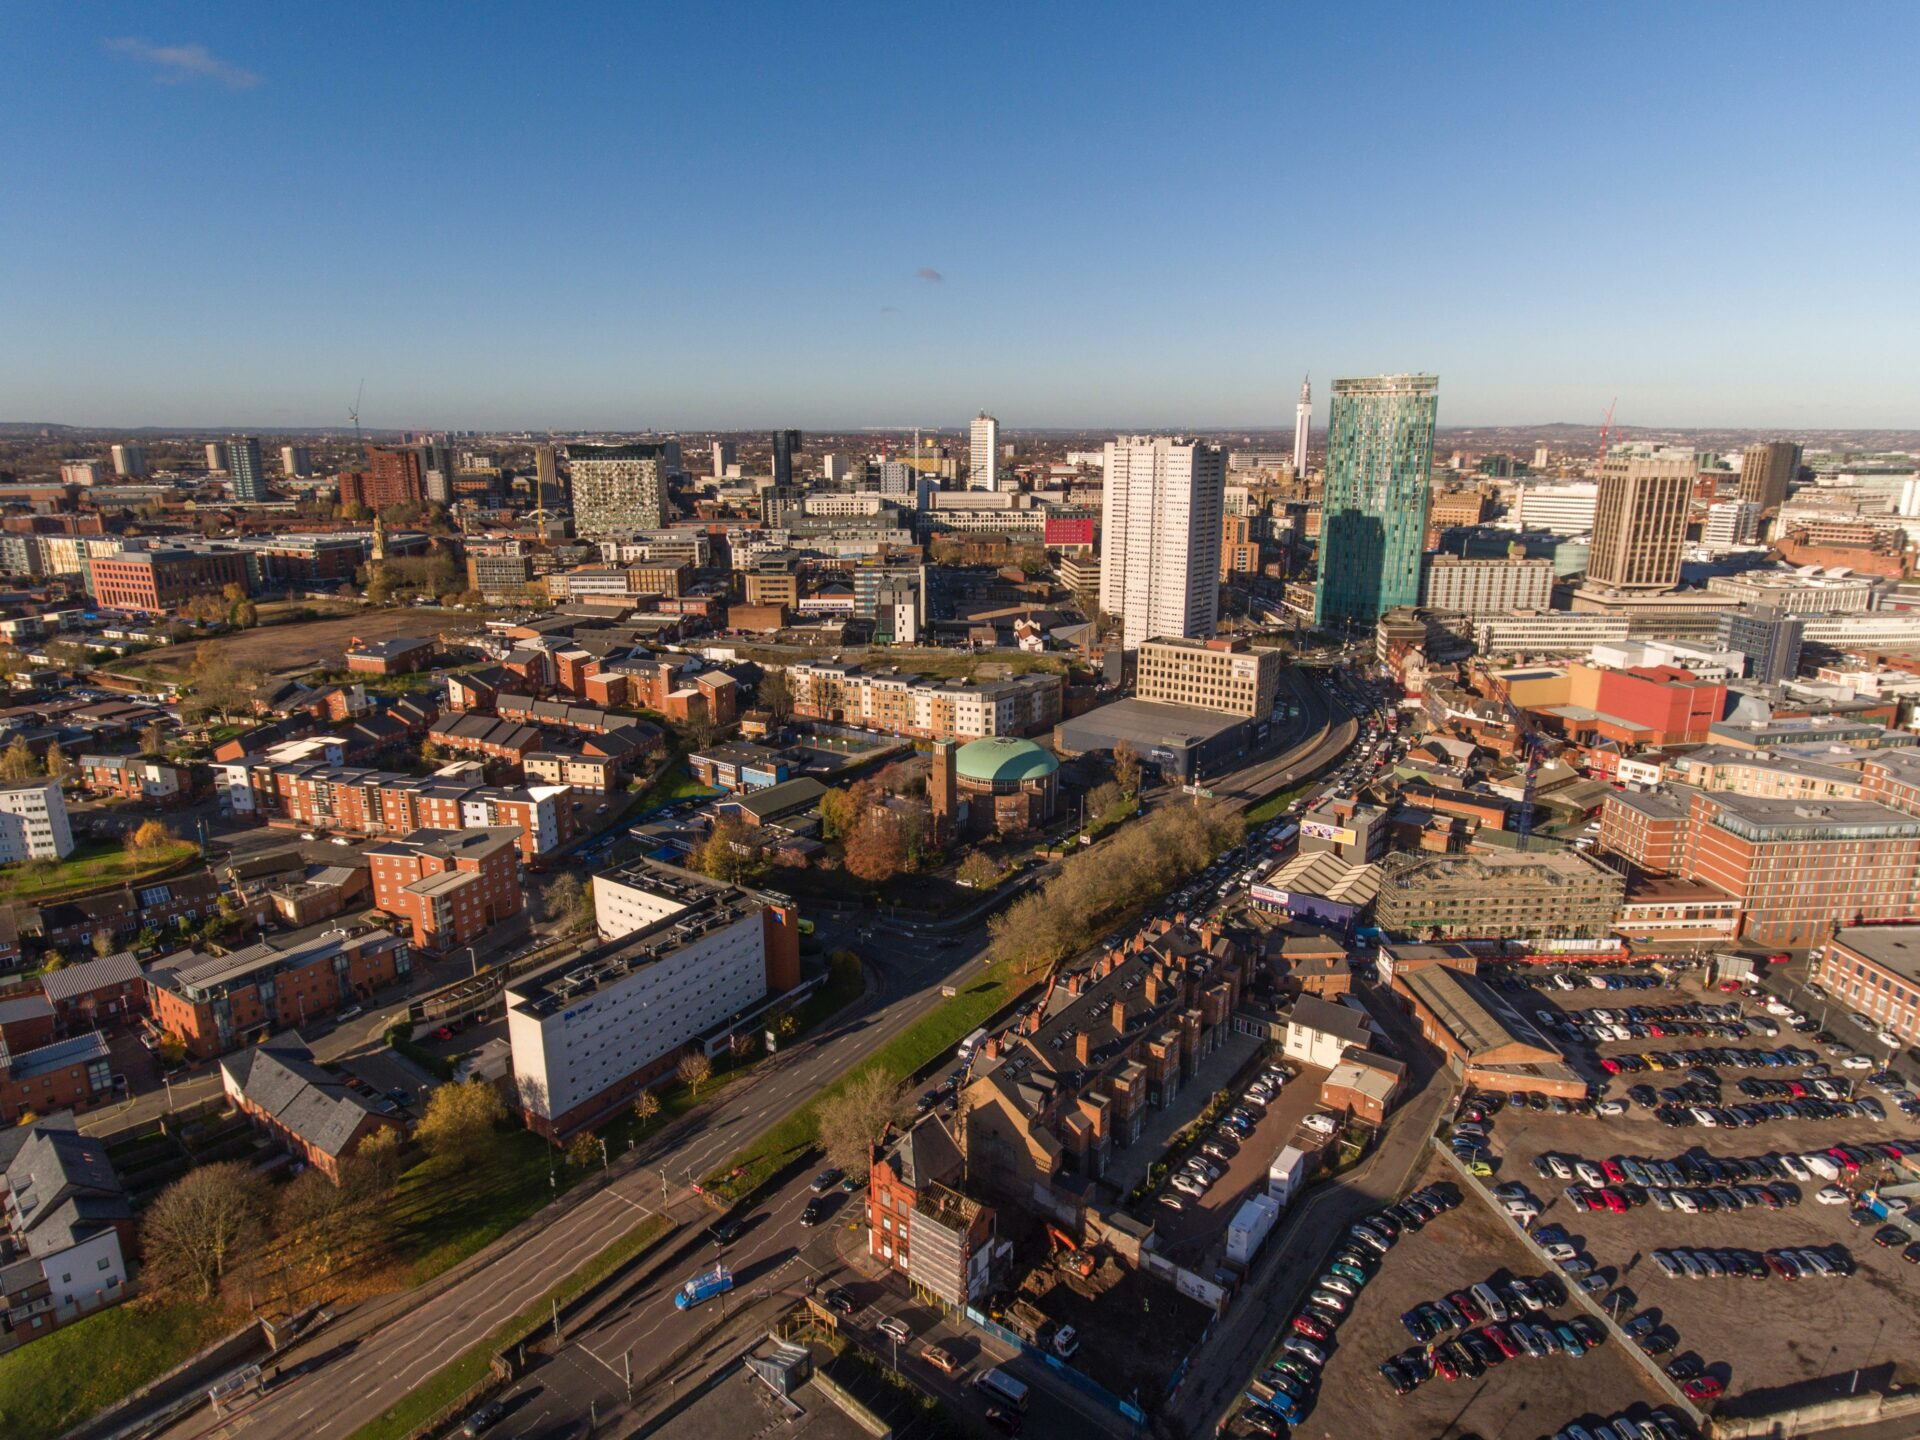 View of the Birmingham city skyline, featuring tall buildings to highlight urban densification (including the construction of new homes)taking place in this local authority.